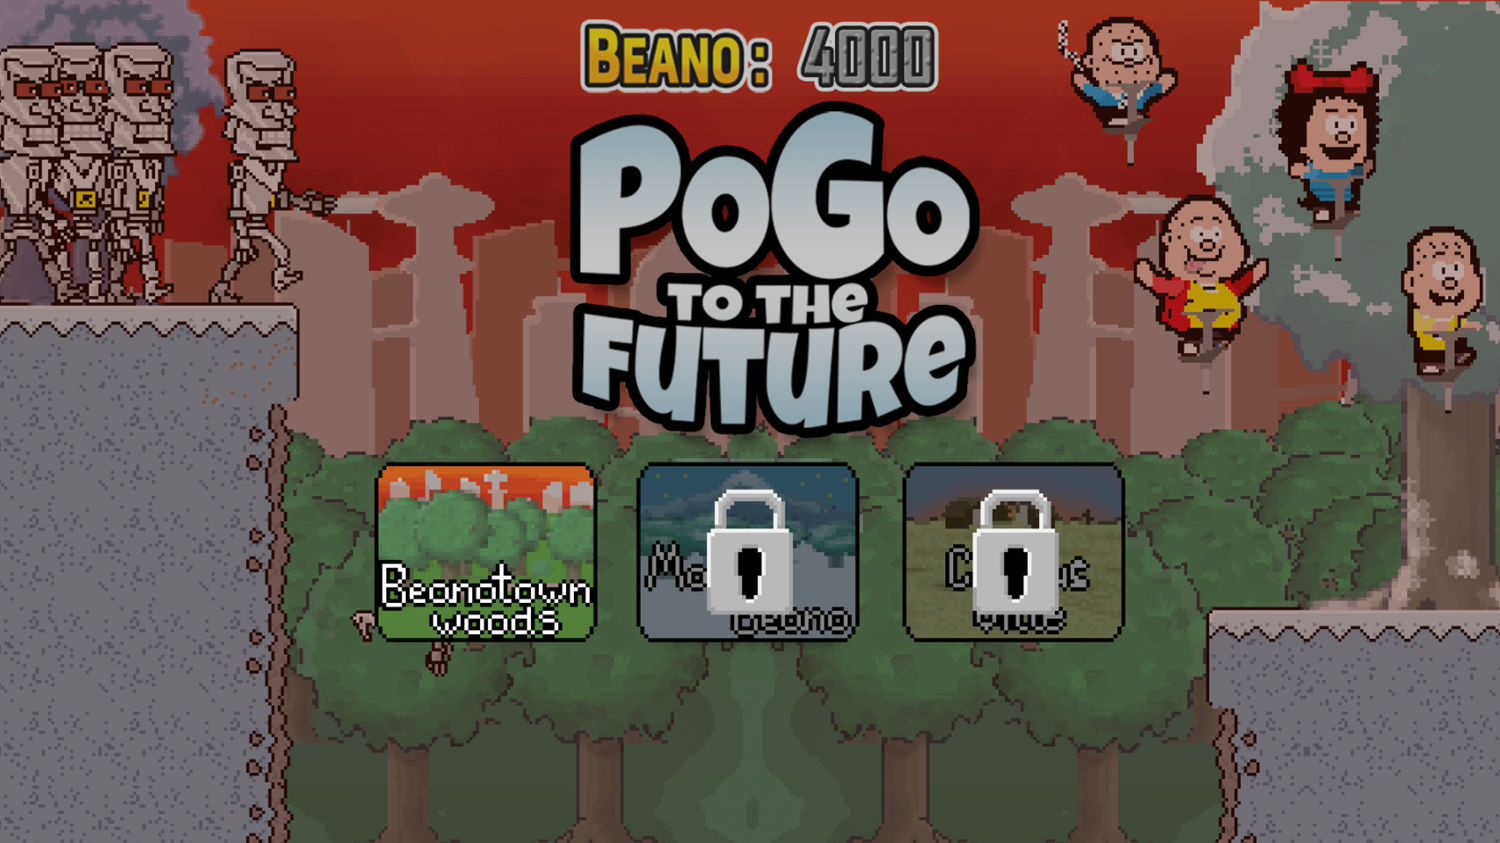 Pogo to the Future Game Stage Select Screenshot.